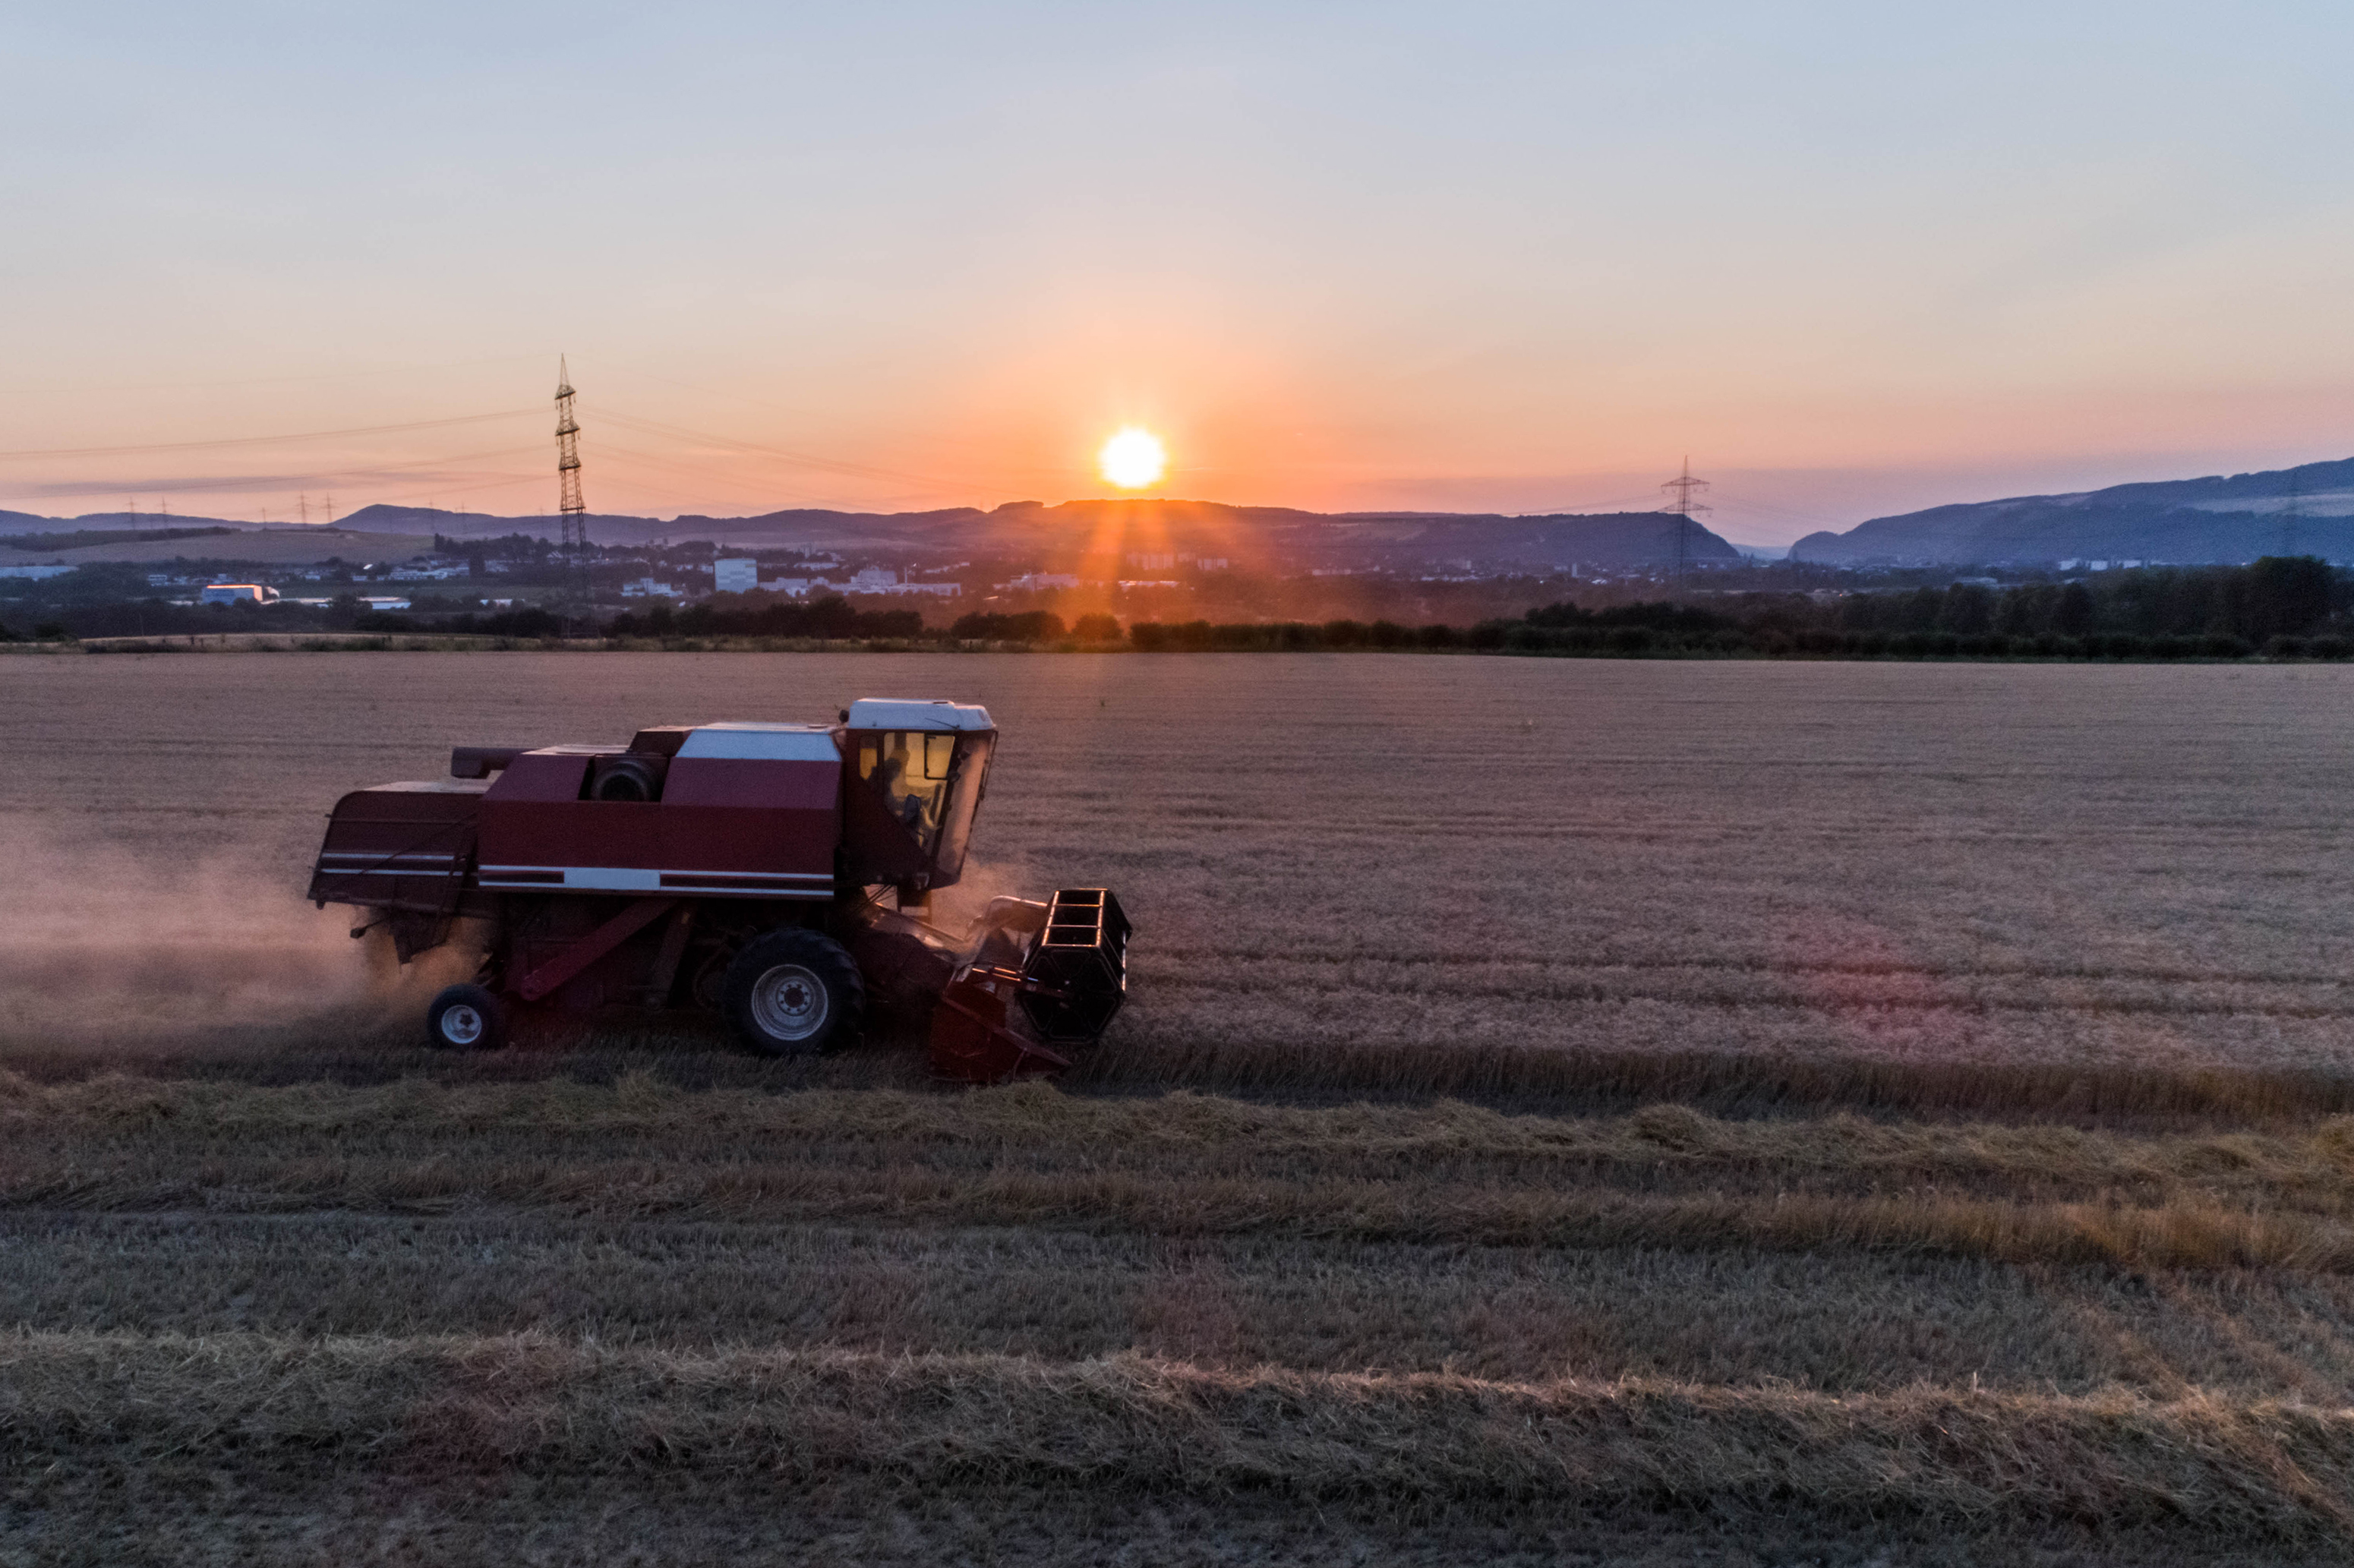 Aerial view of a combine harvester harvesting an oats crop at sunset